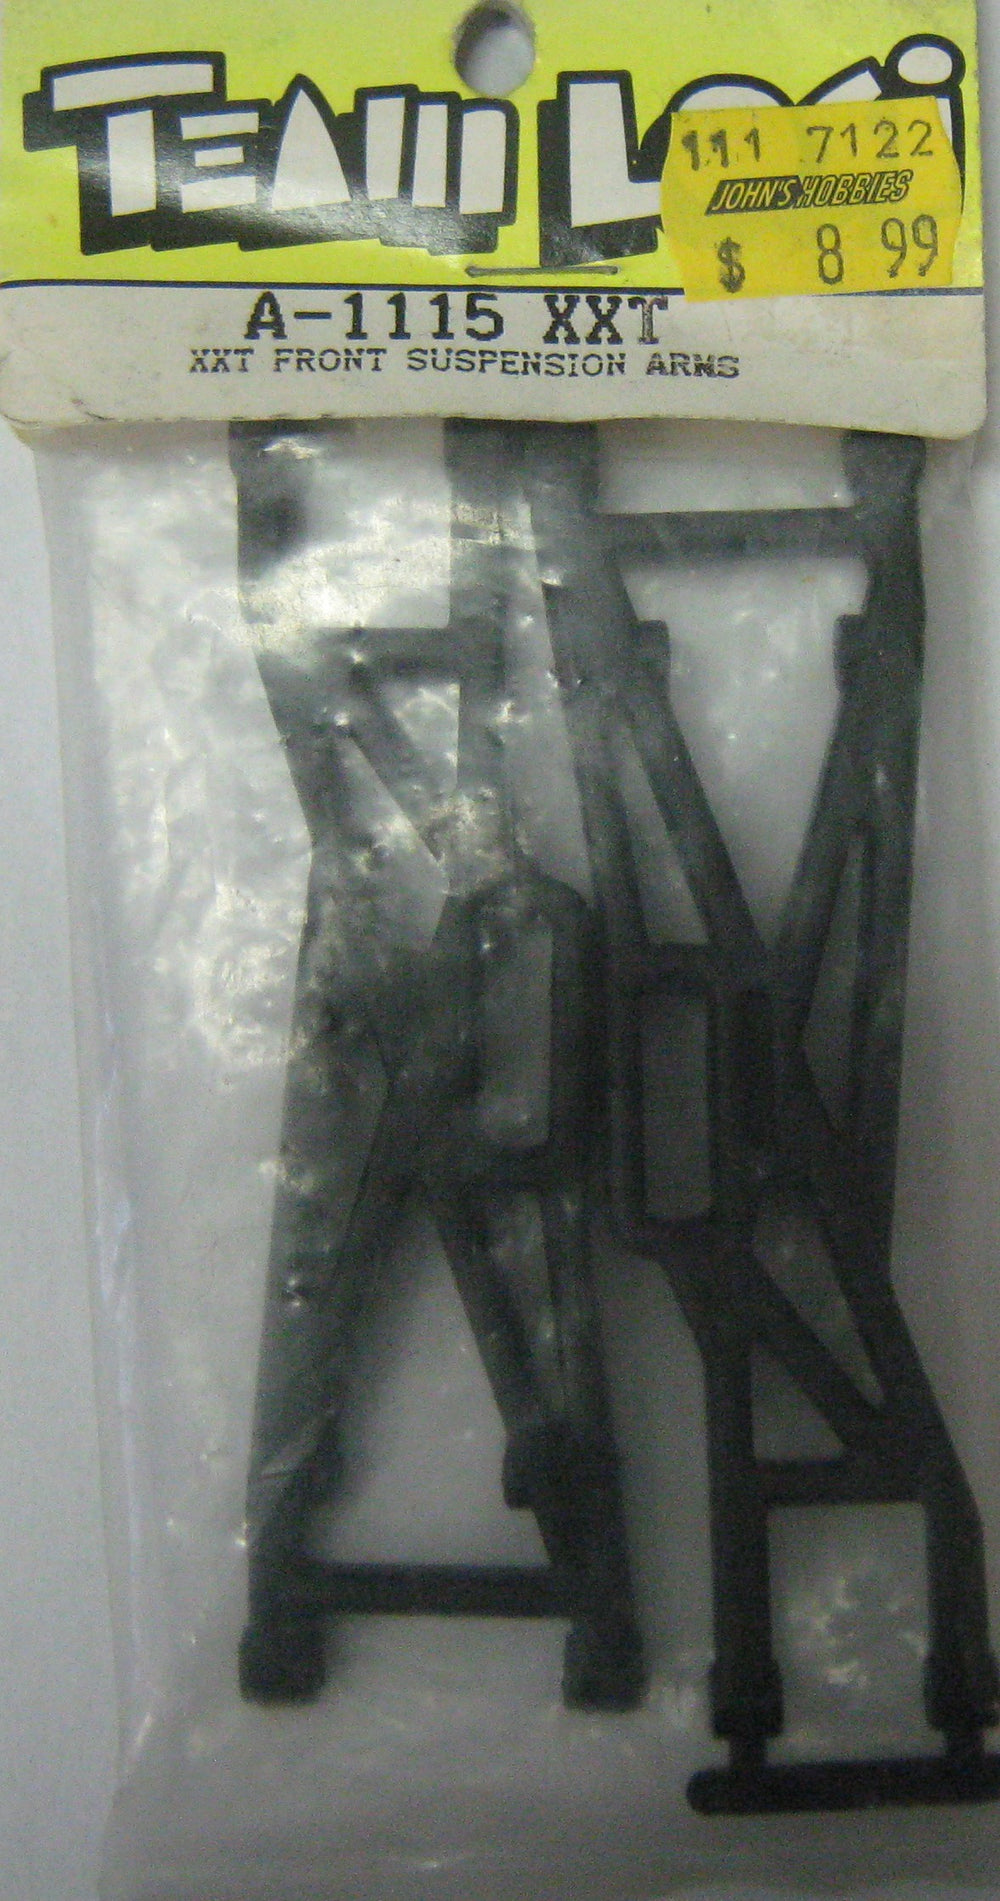 TEAM LOSI # A-1115 - XXXT FRONT SUSPENSION ARMS